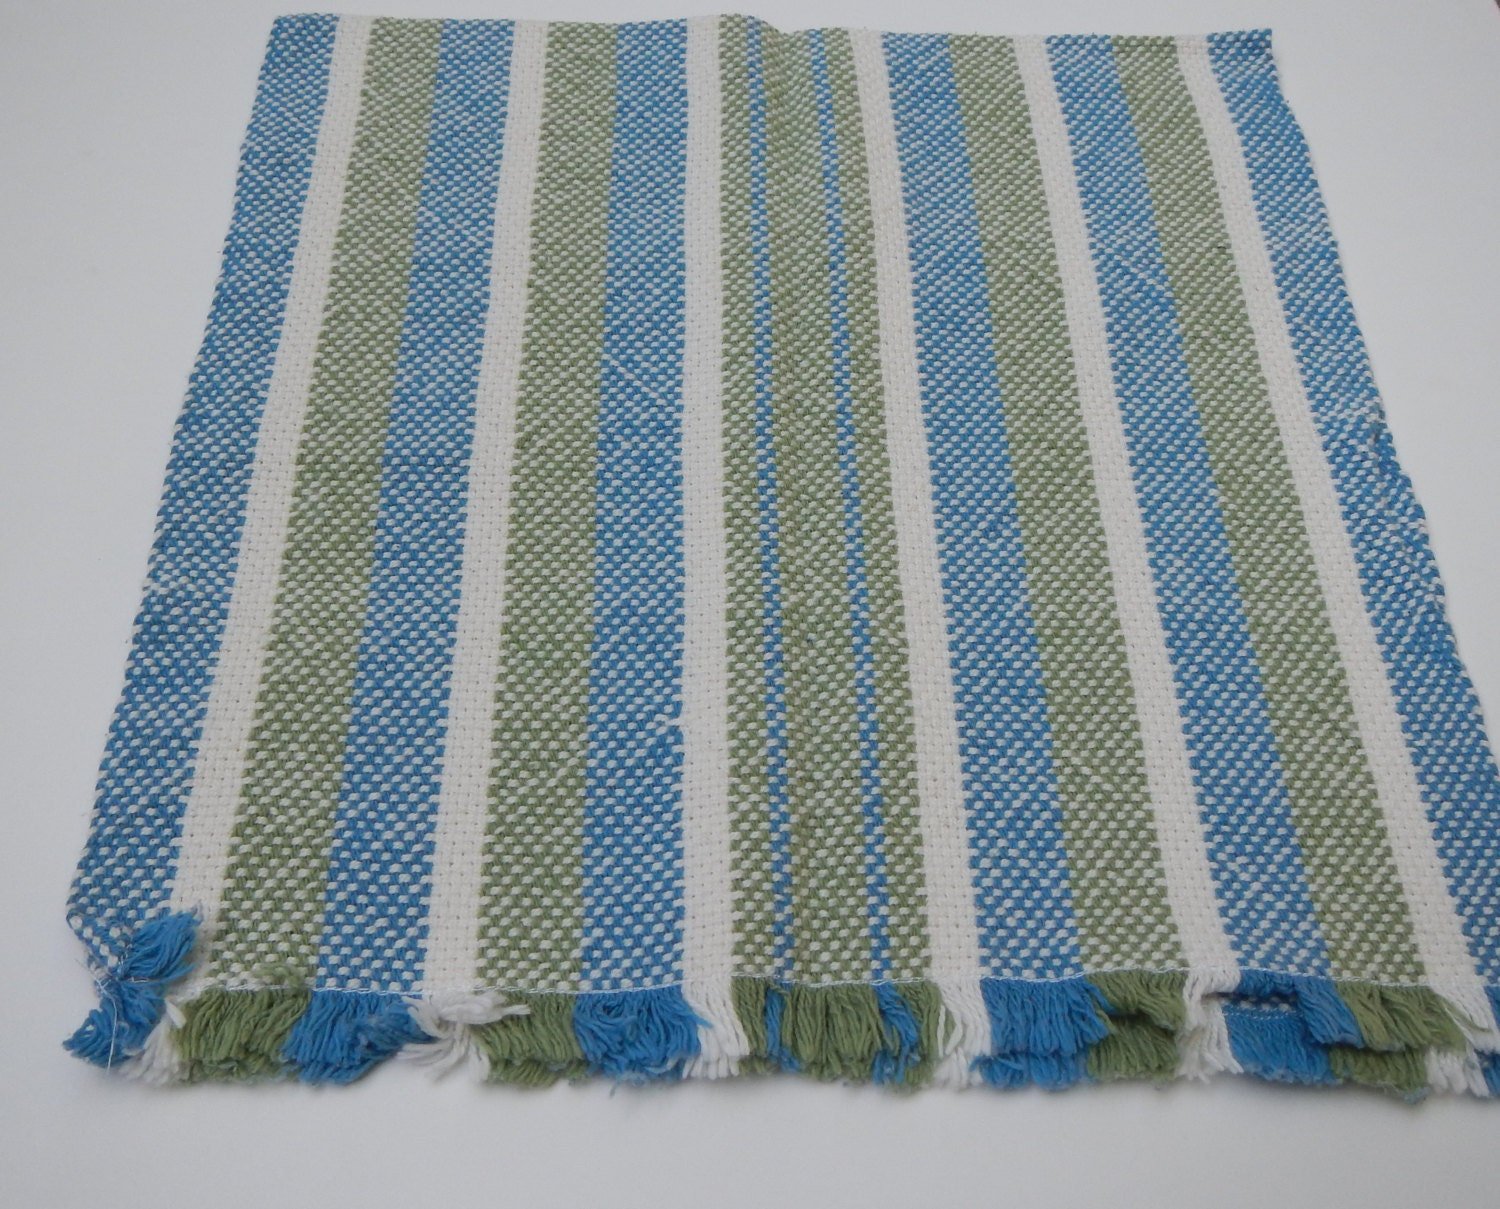 Stripe Blue Green And White: Handwoven Striped Towel Blue Green And White By WarpedWeavings